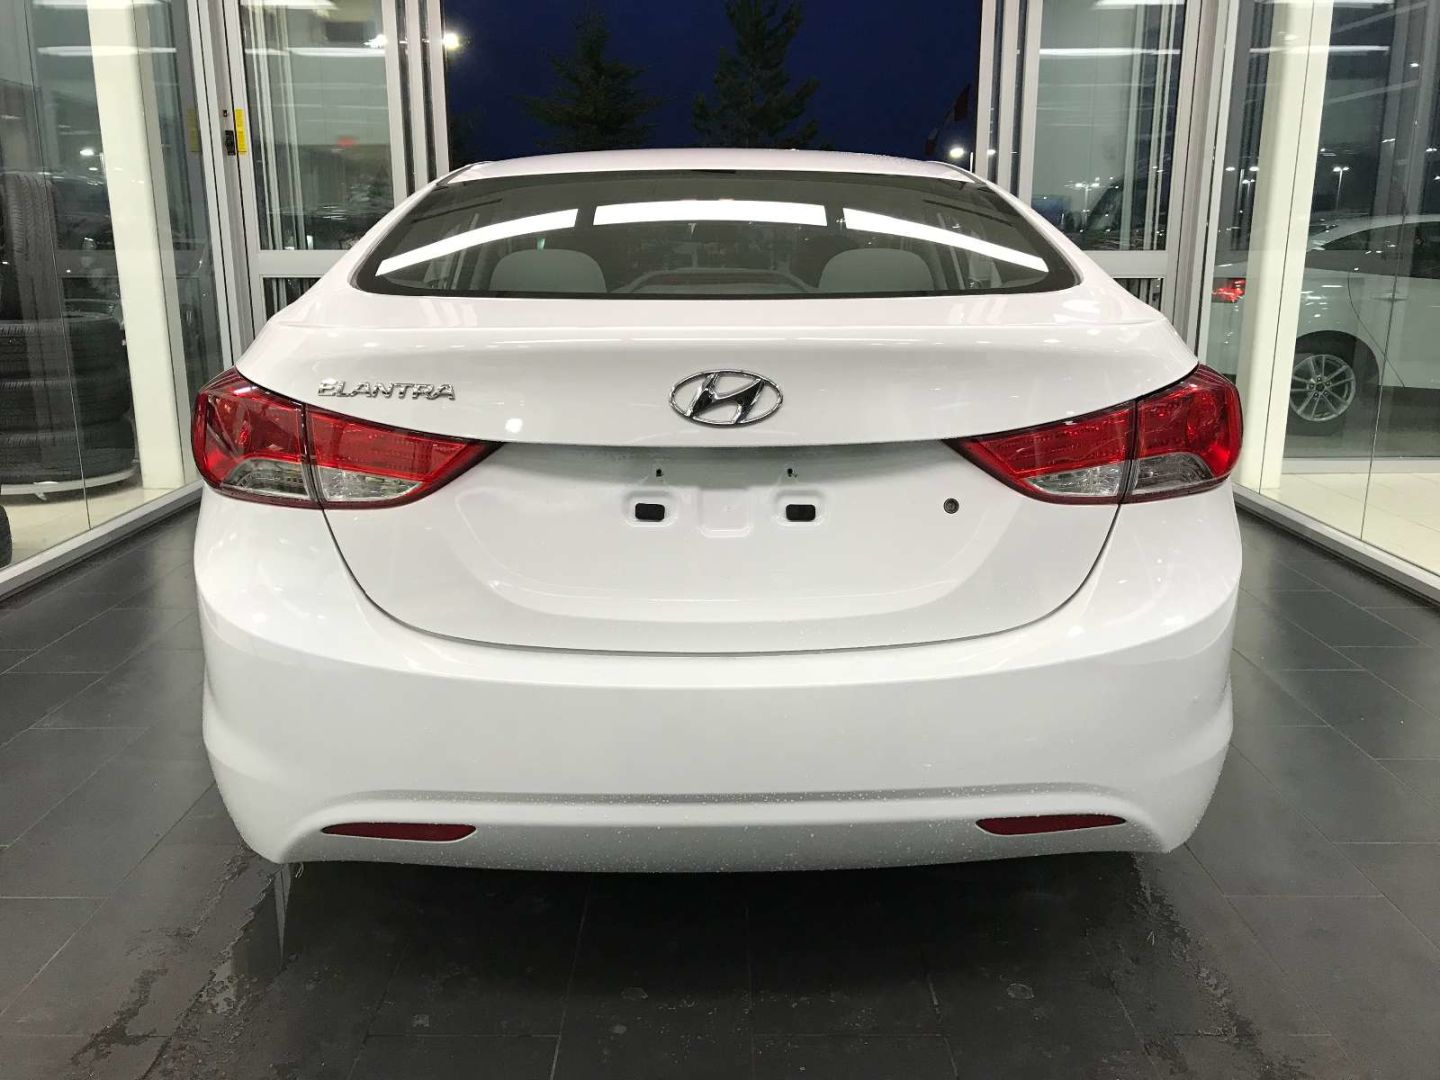 2013 Hyundai Elantra L for sale in Edmonton, Alberta